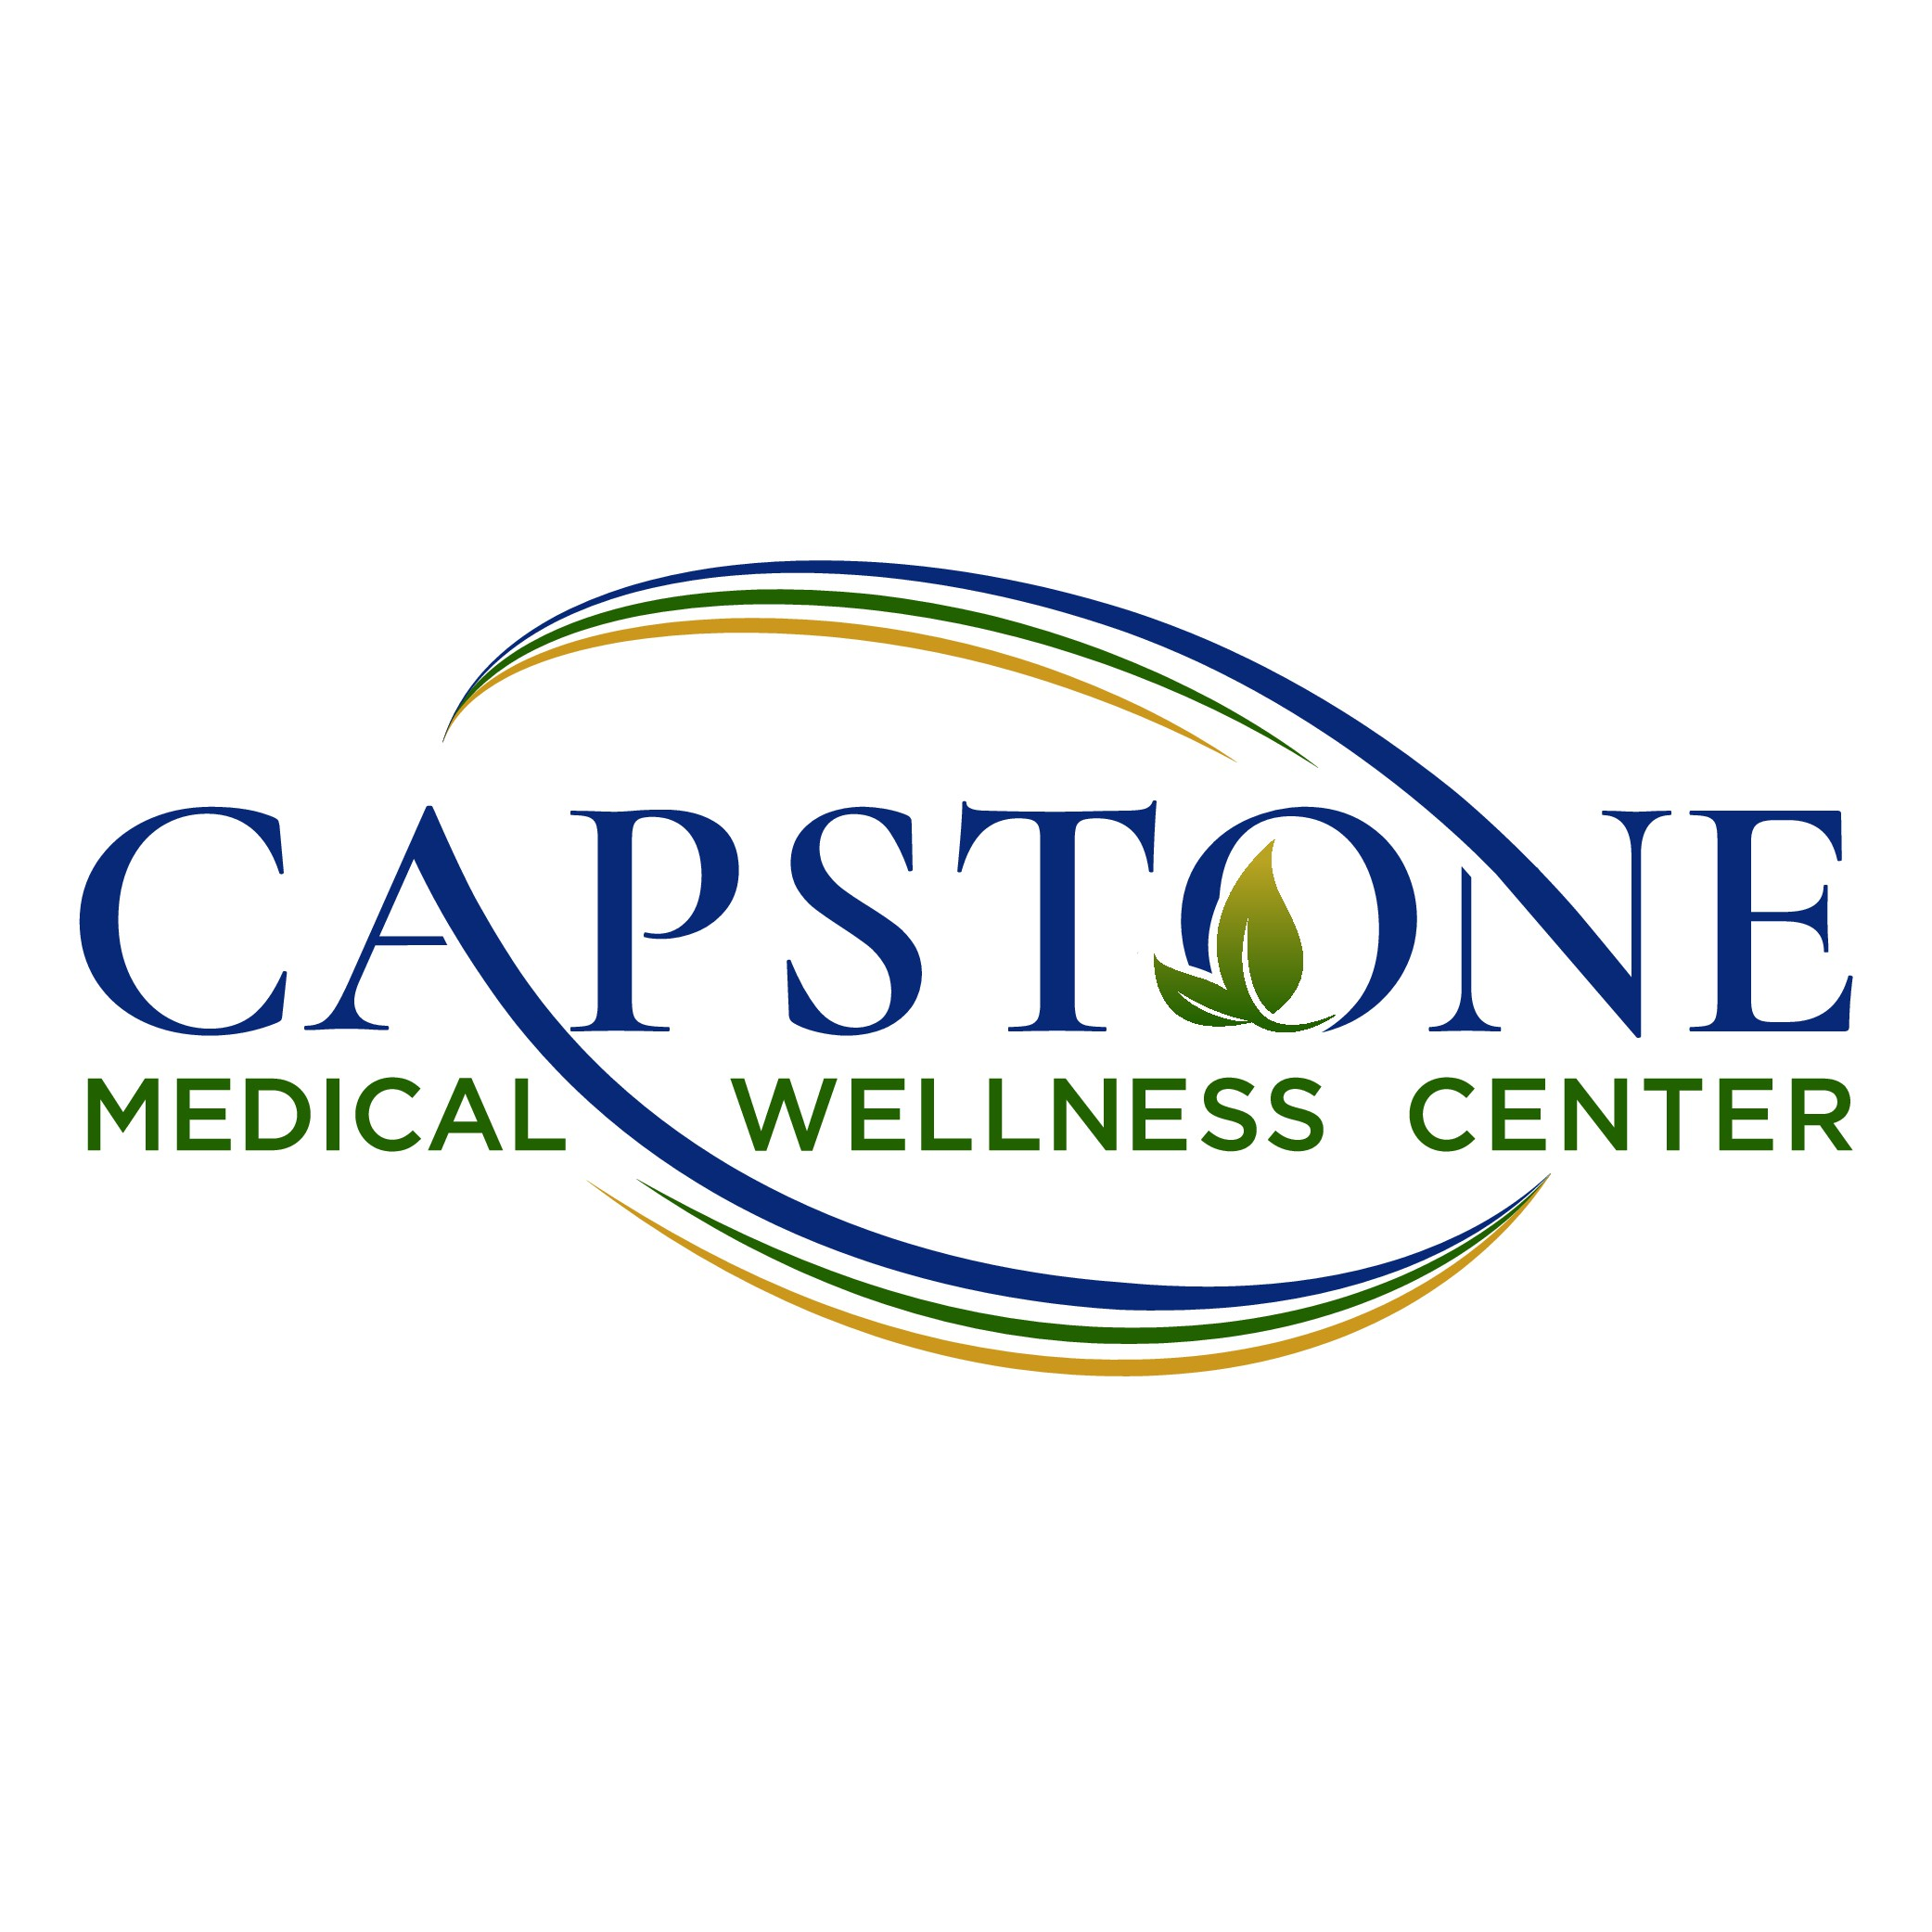 We need a powerful new logo to re-brand our medical practice to total wellness center!